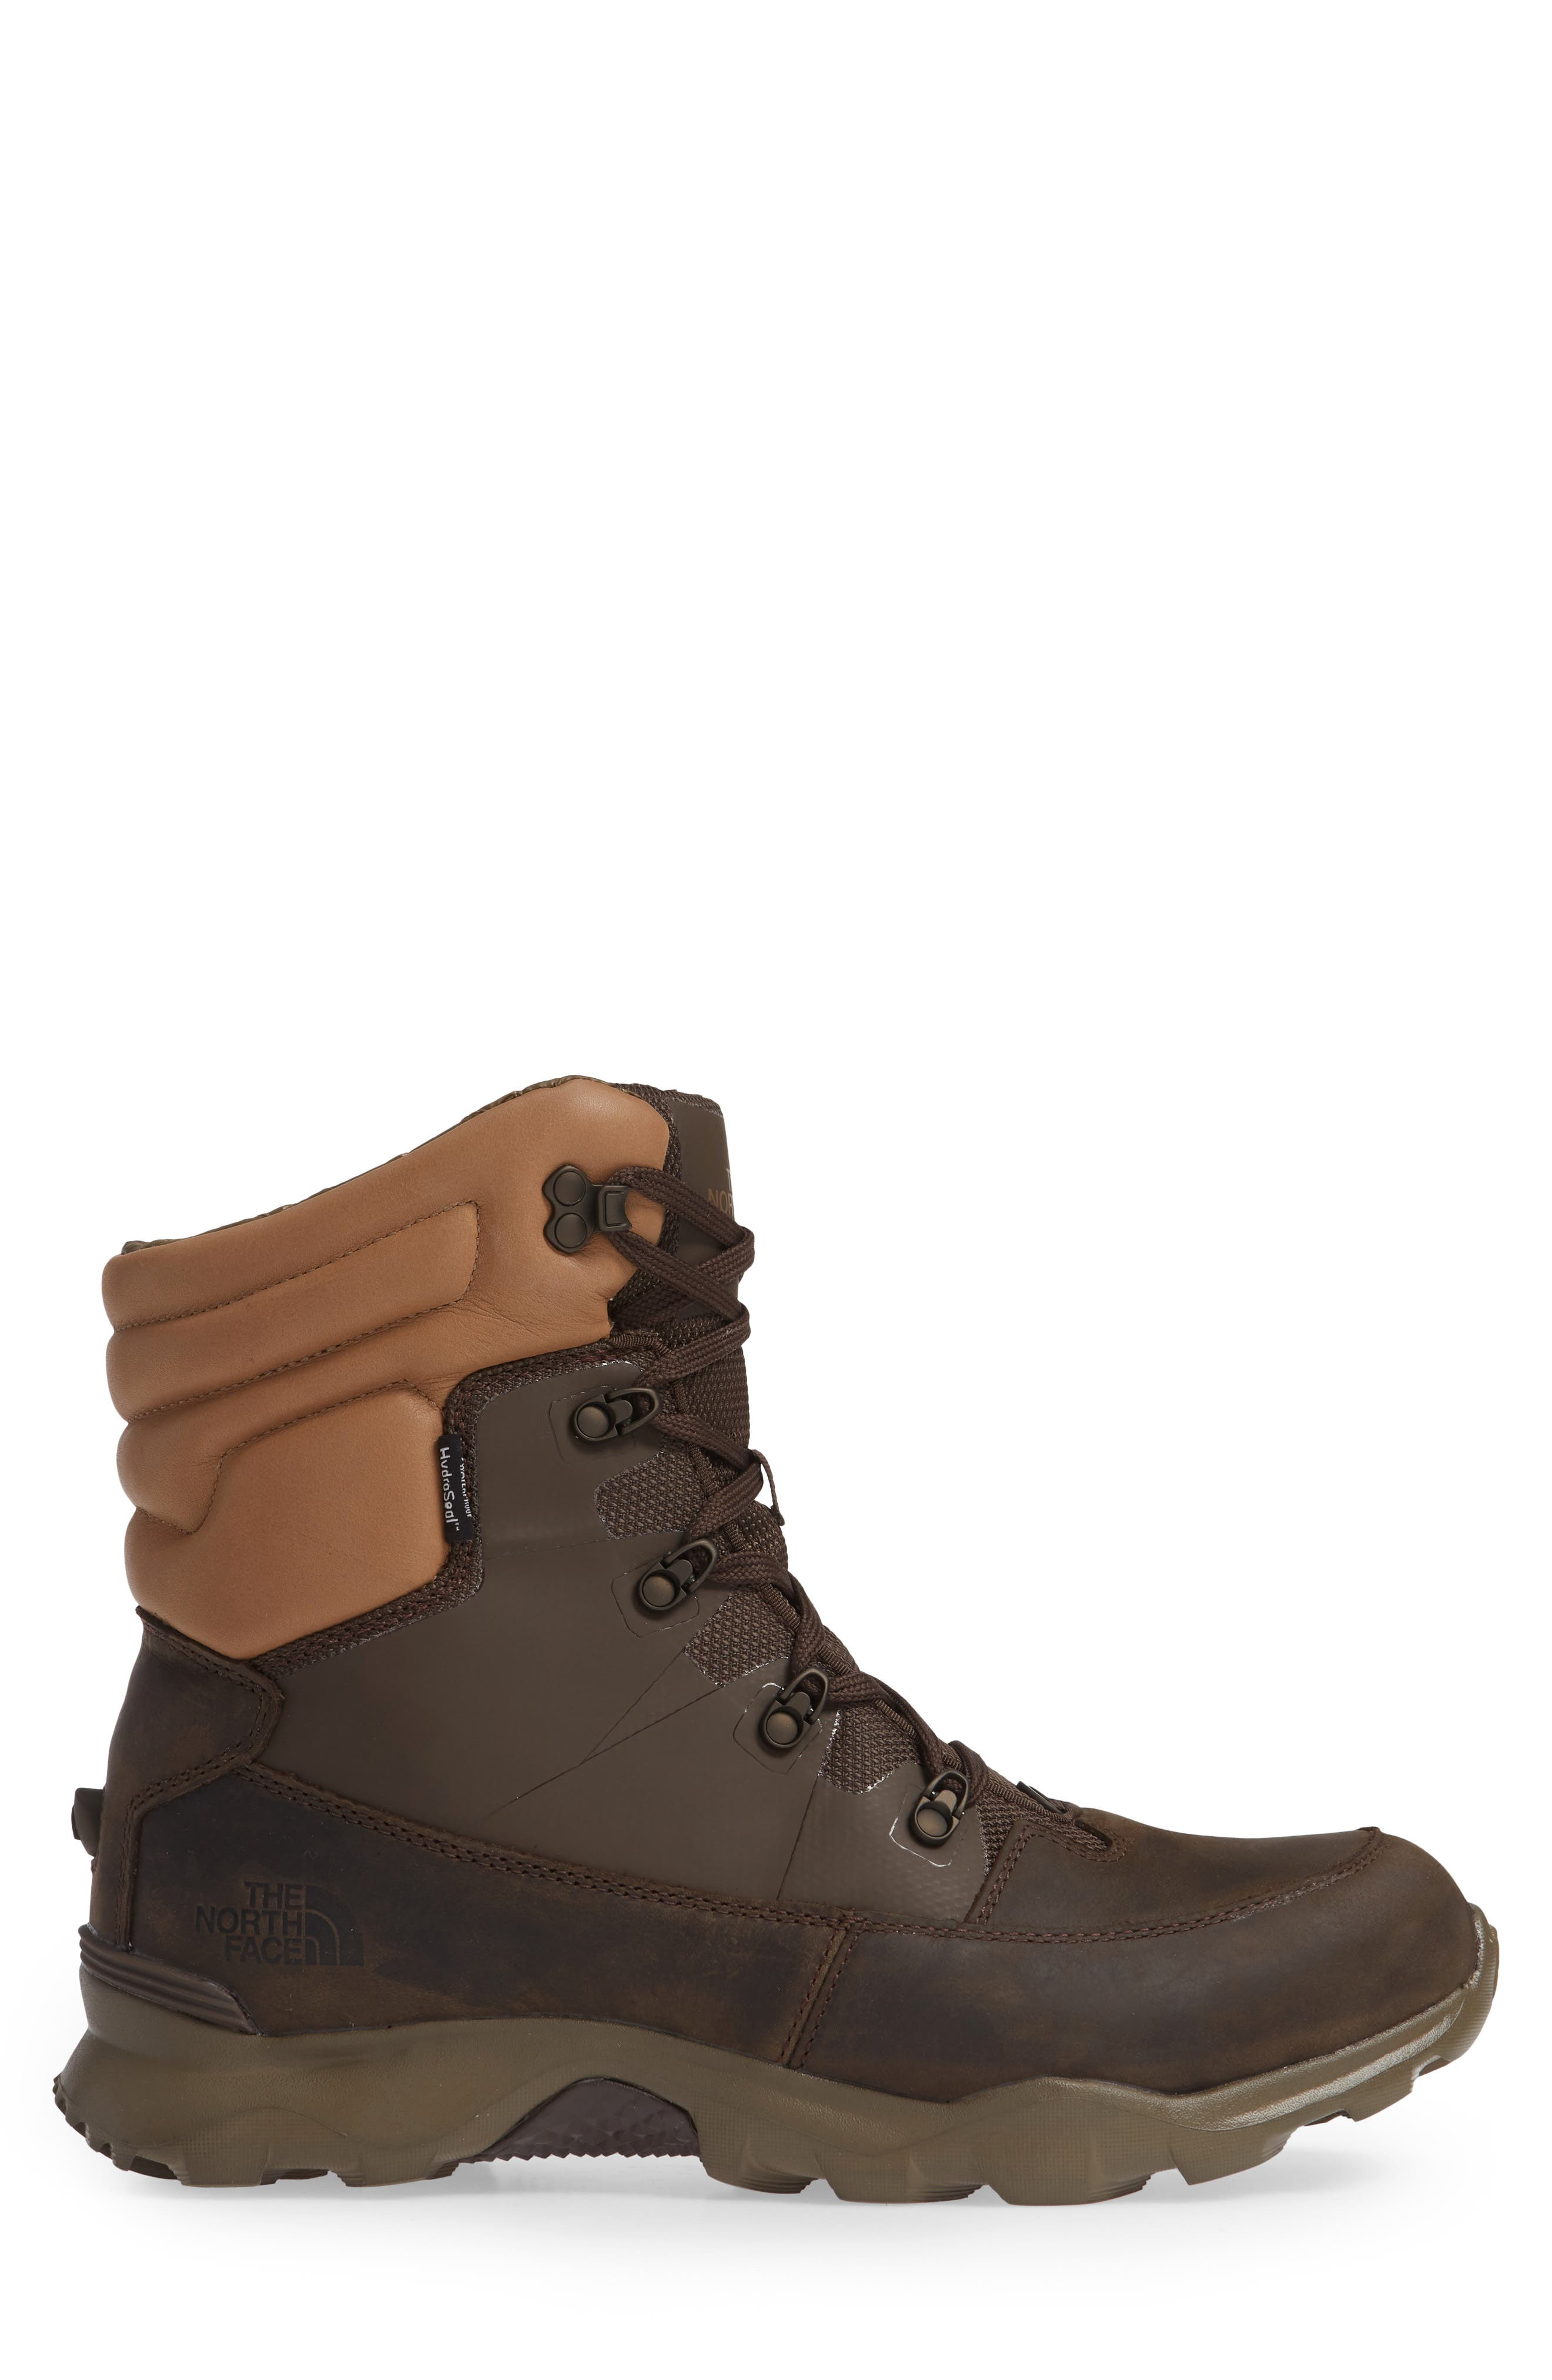 ThermoBall Lifty Snow Boot,                             Alternate thumbnail 3, color,                             CHOCOLATE BROWN/ CARGO KHAKI